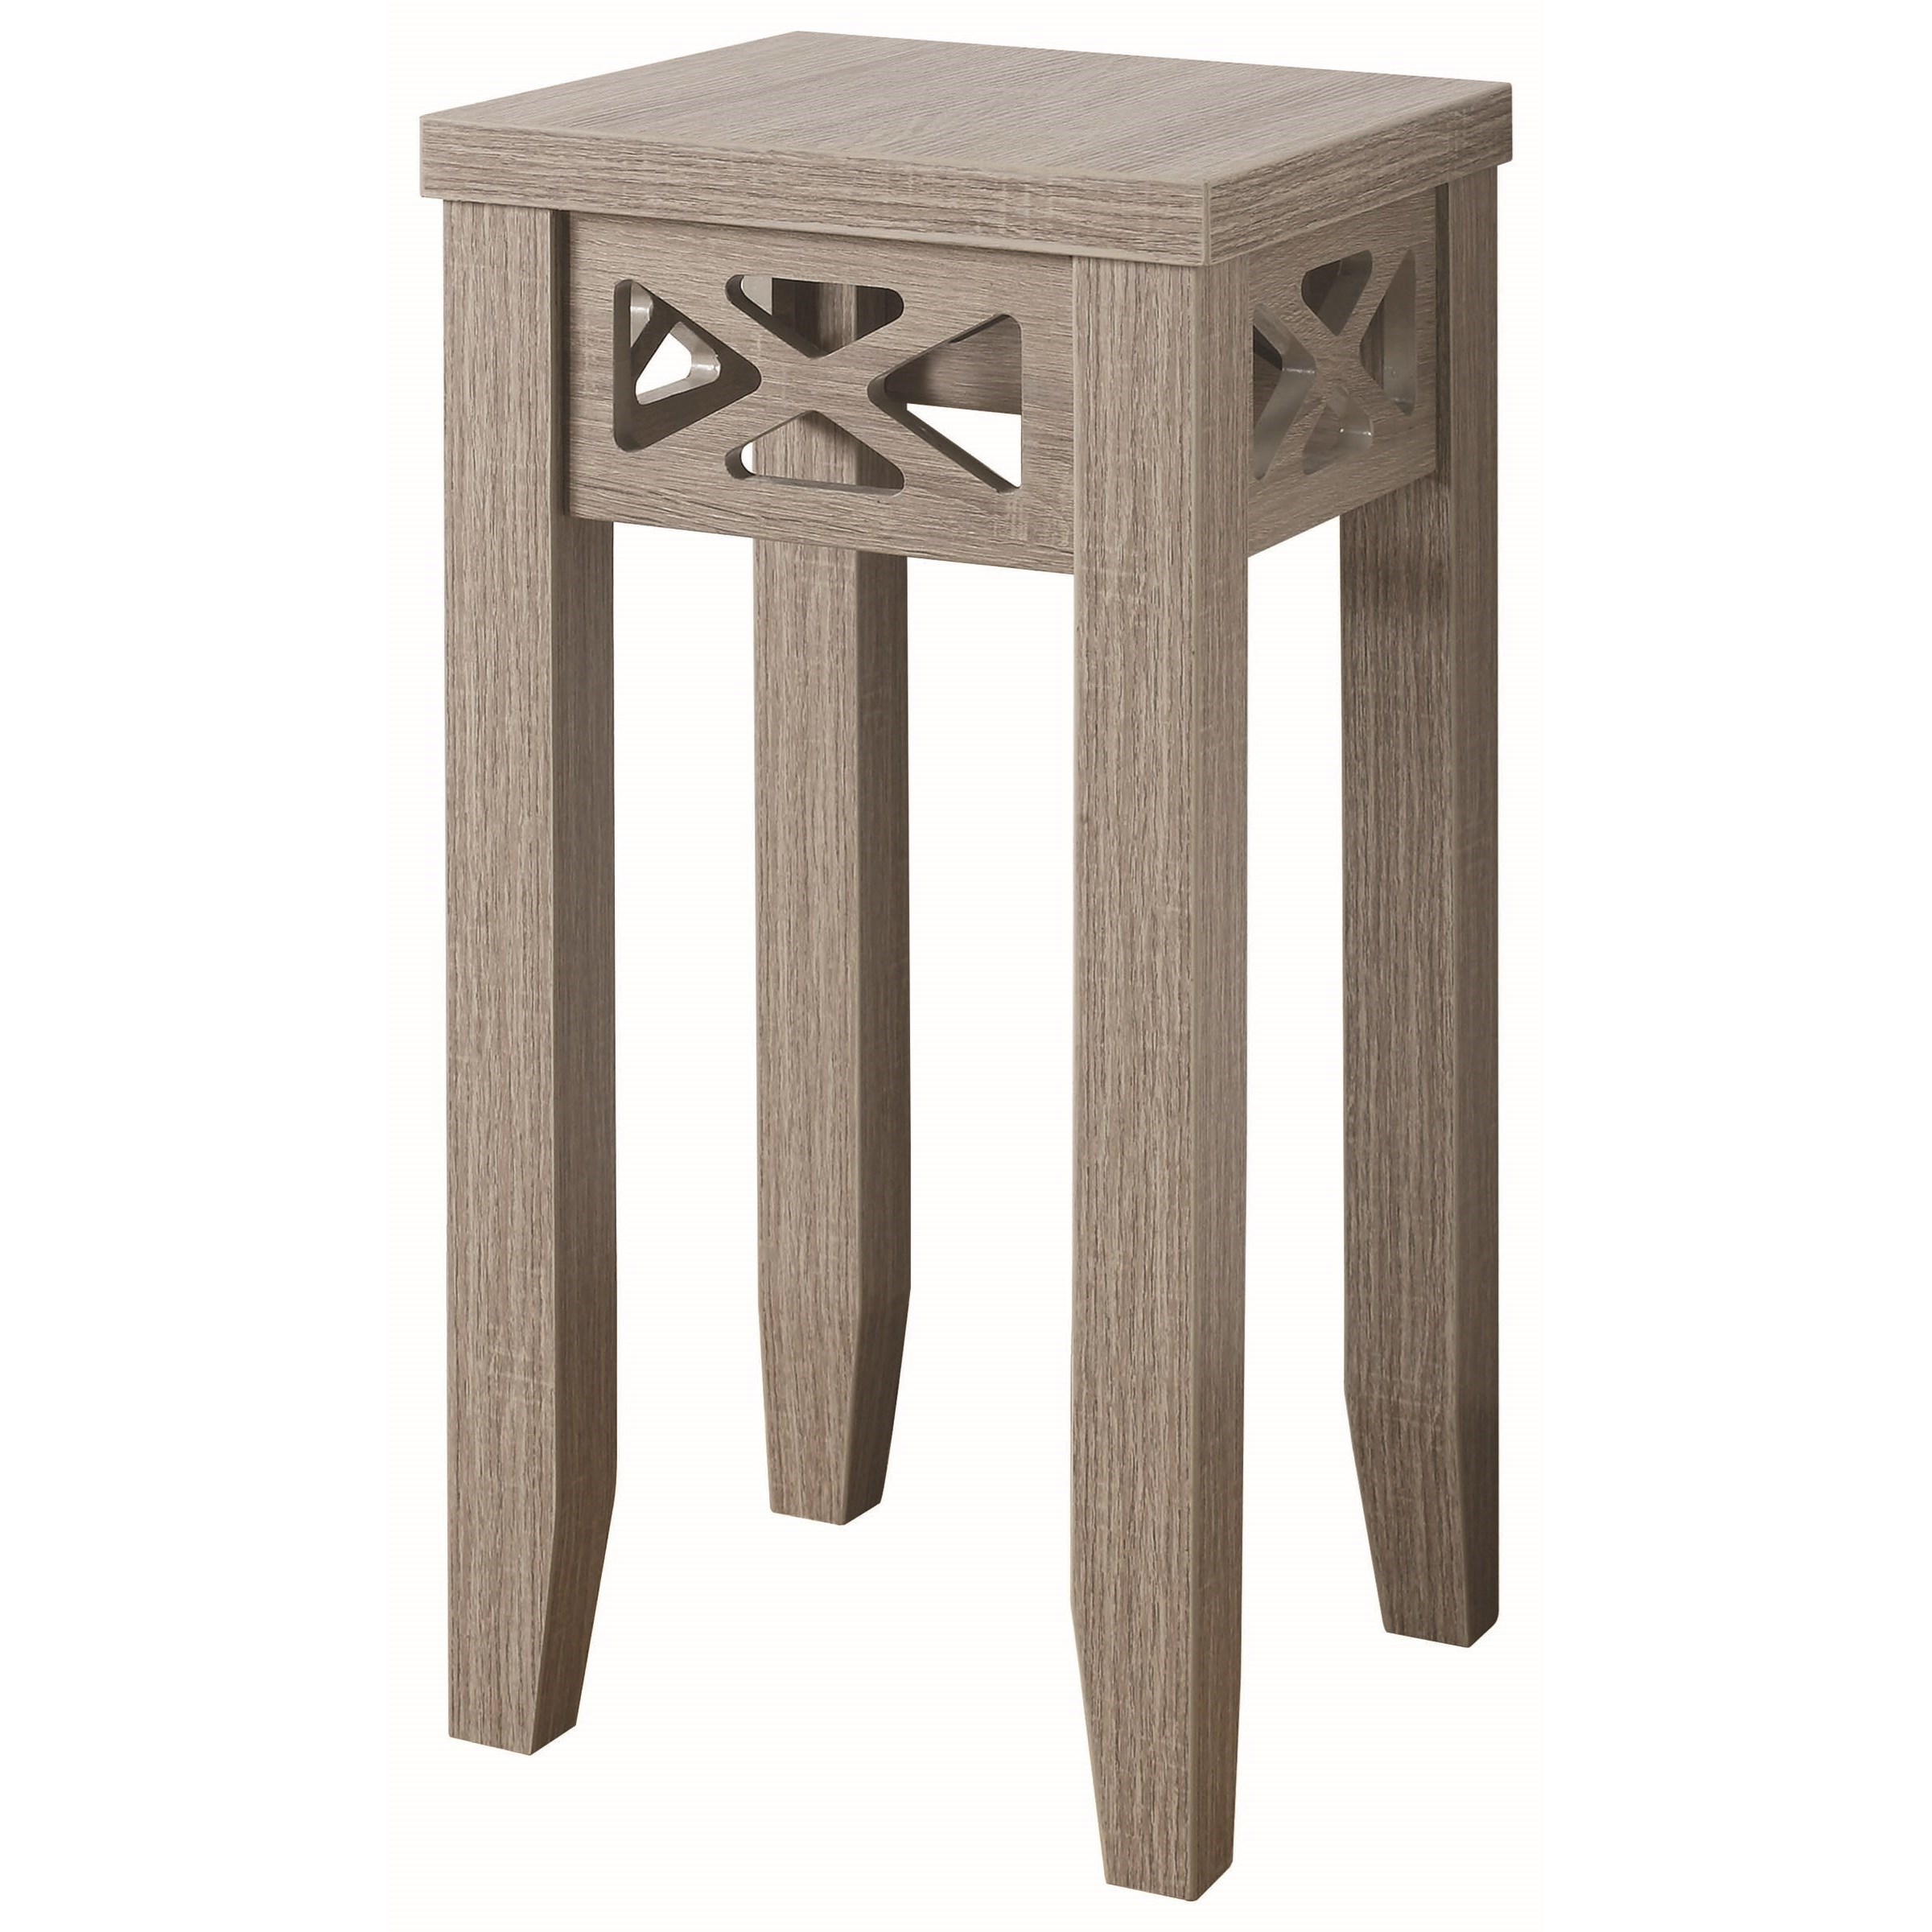 Coaster Accent Tables Accent Table With Triangle Trim Accent   Coaster Fine  Furniture